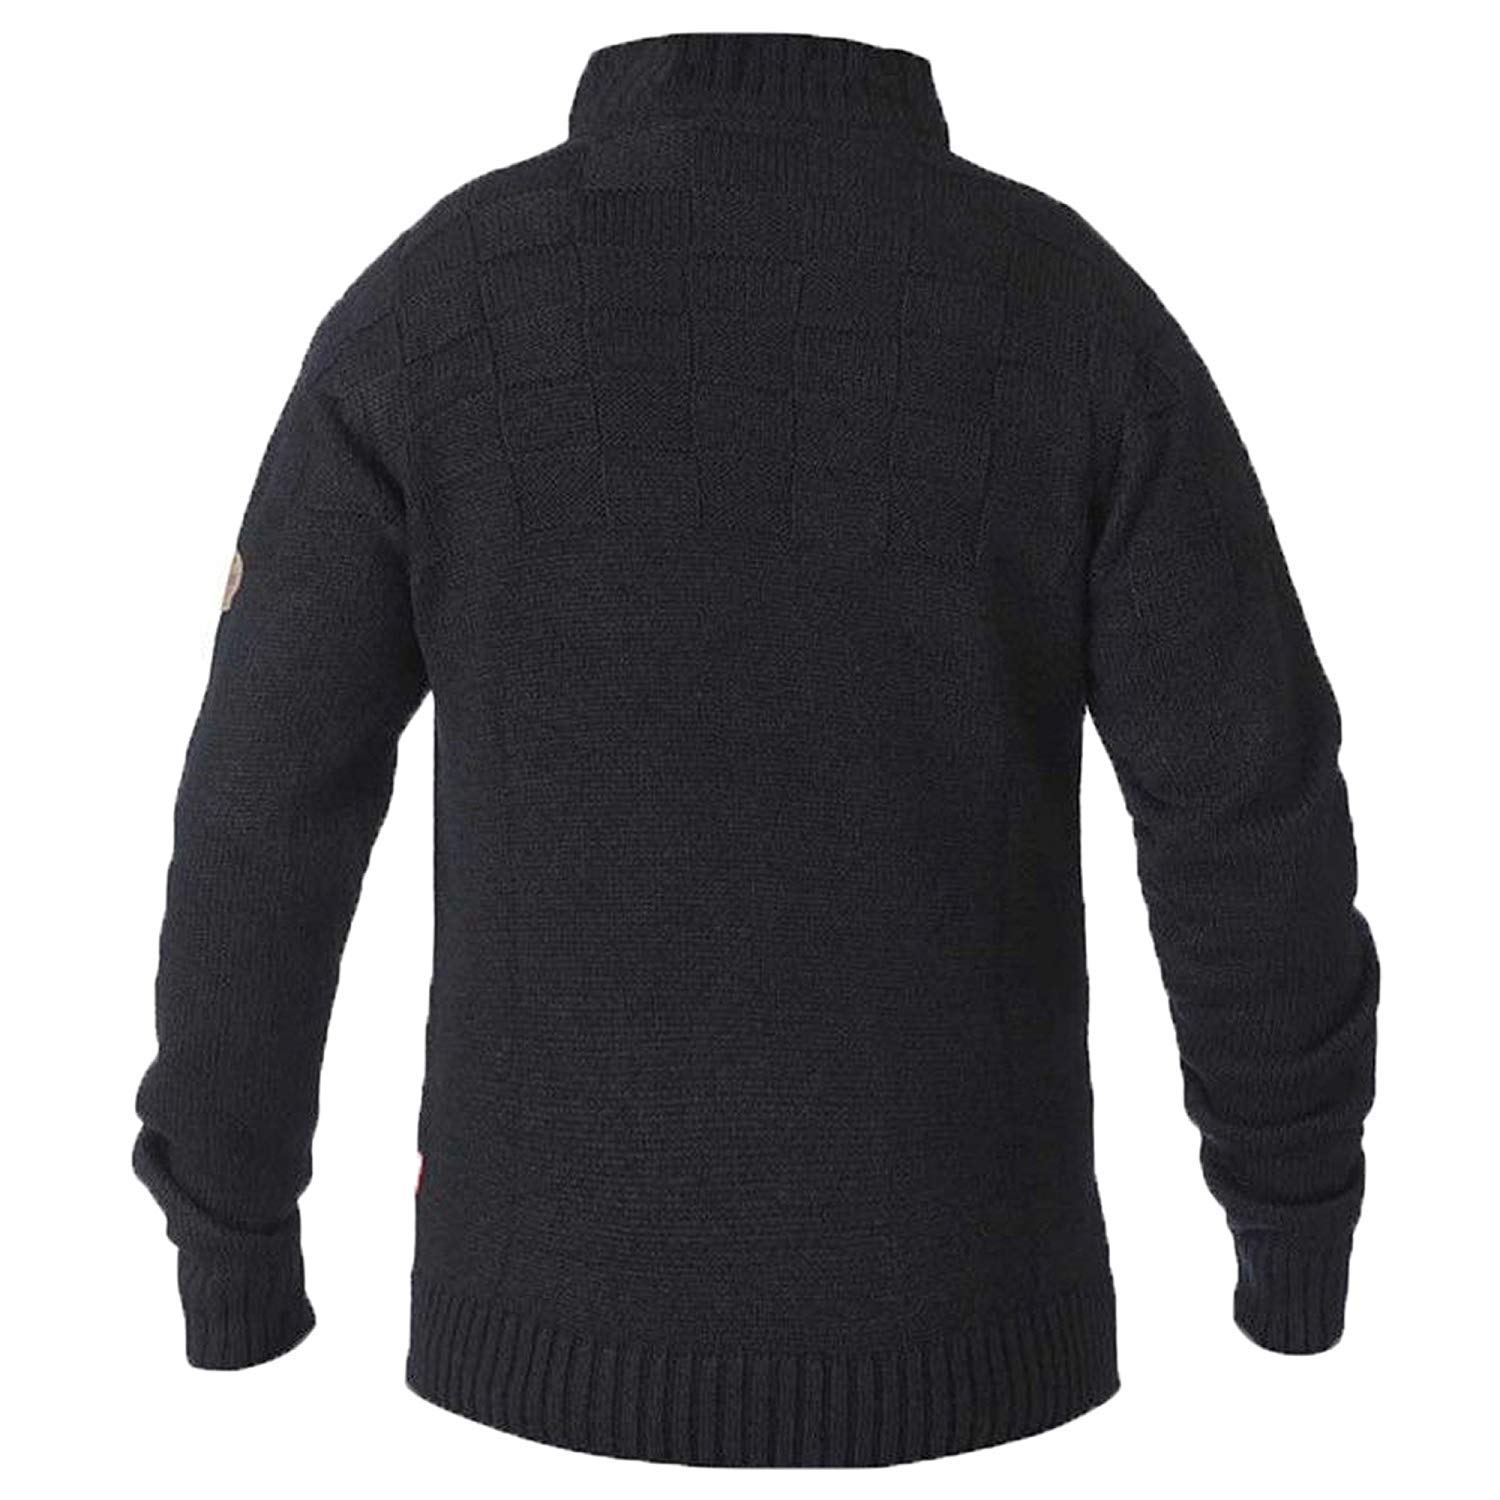 mens jumper D555 Duke big king size knitted sweater pullover zip button winter